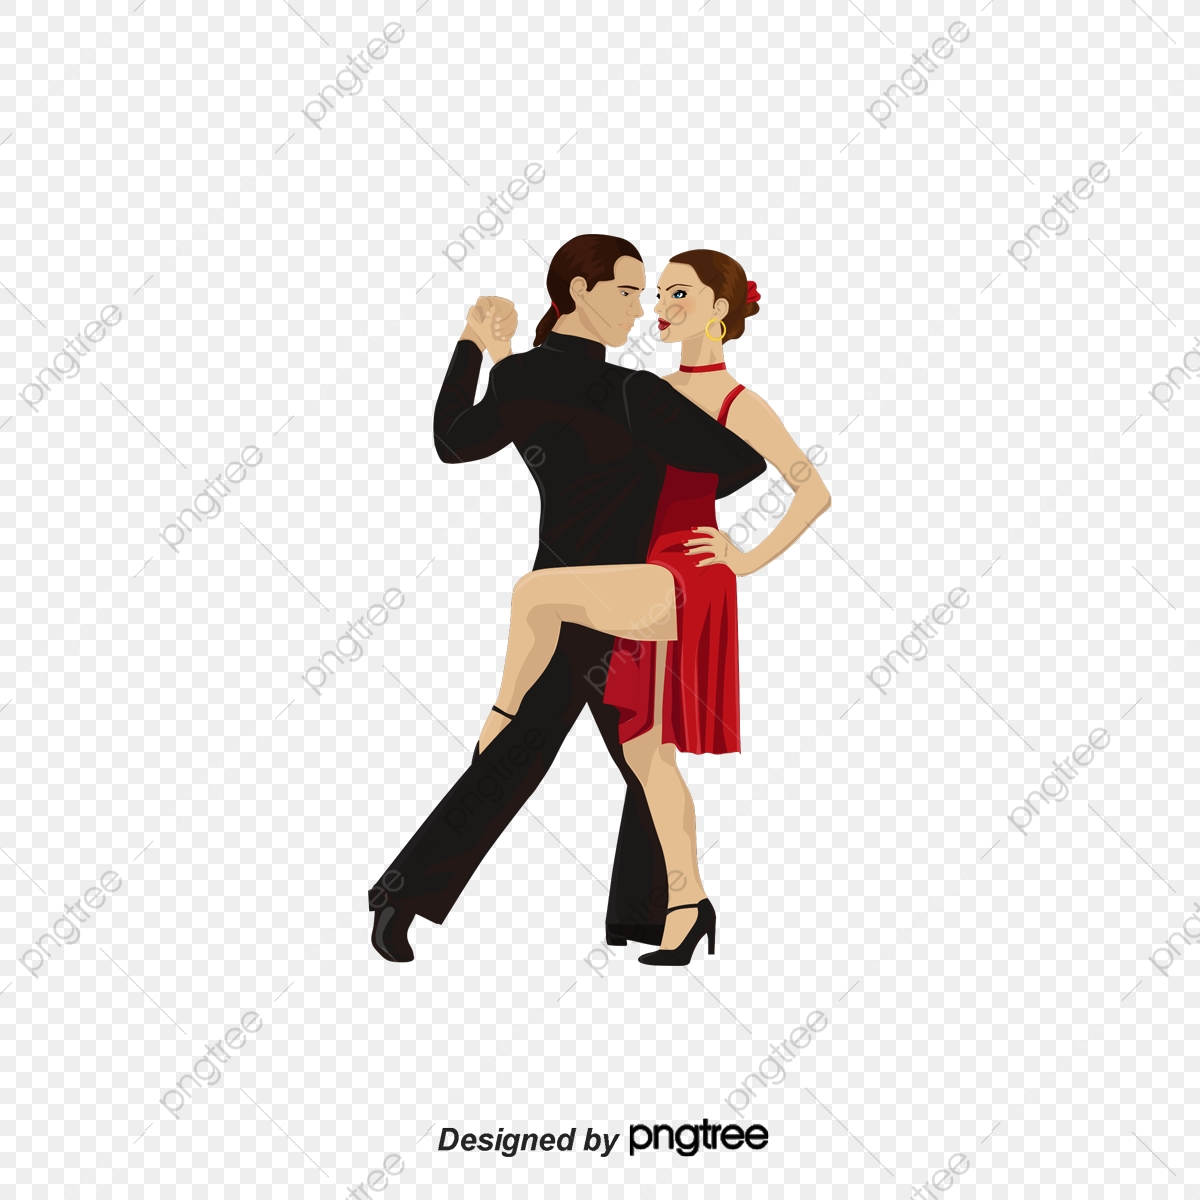 Ballroom Dancing Men And Women The Man Woman Ballroom Dancing Png Transparent Clipart Image And Psd File For Free Download